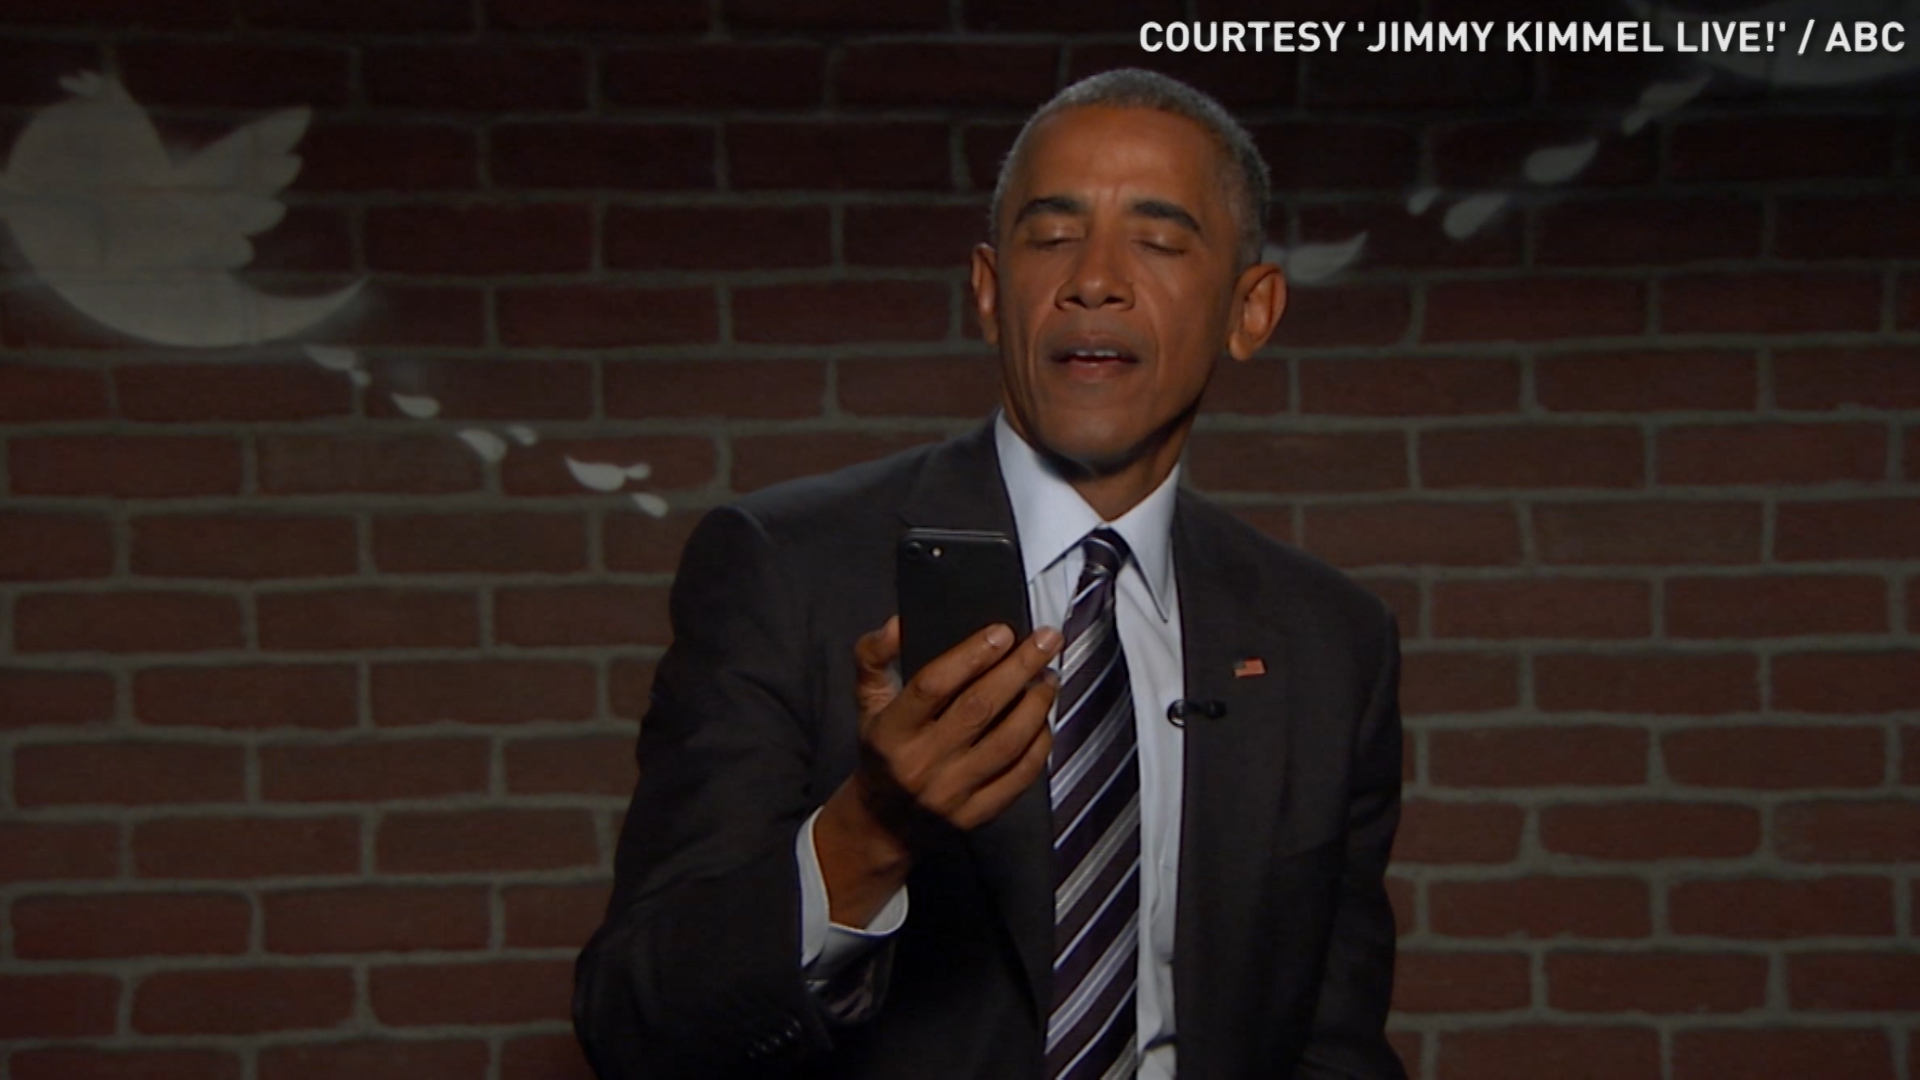 Obama reads mean tweets about himself